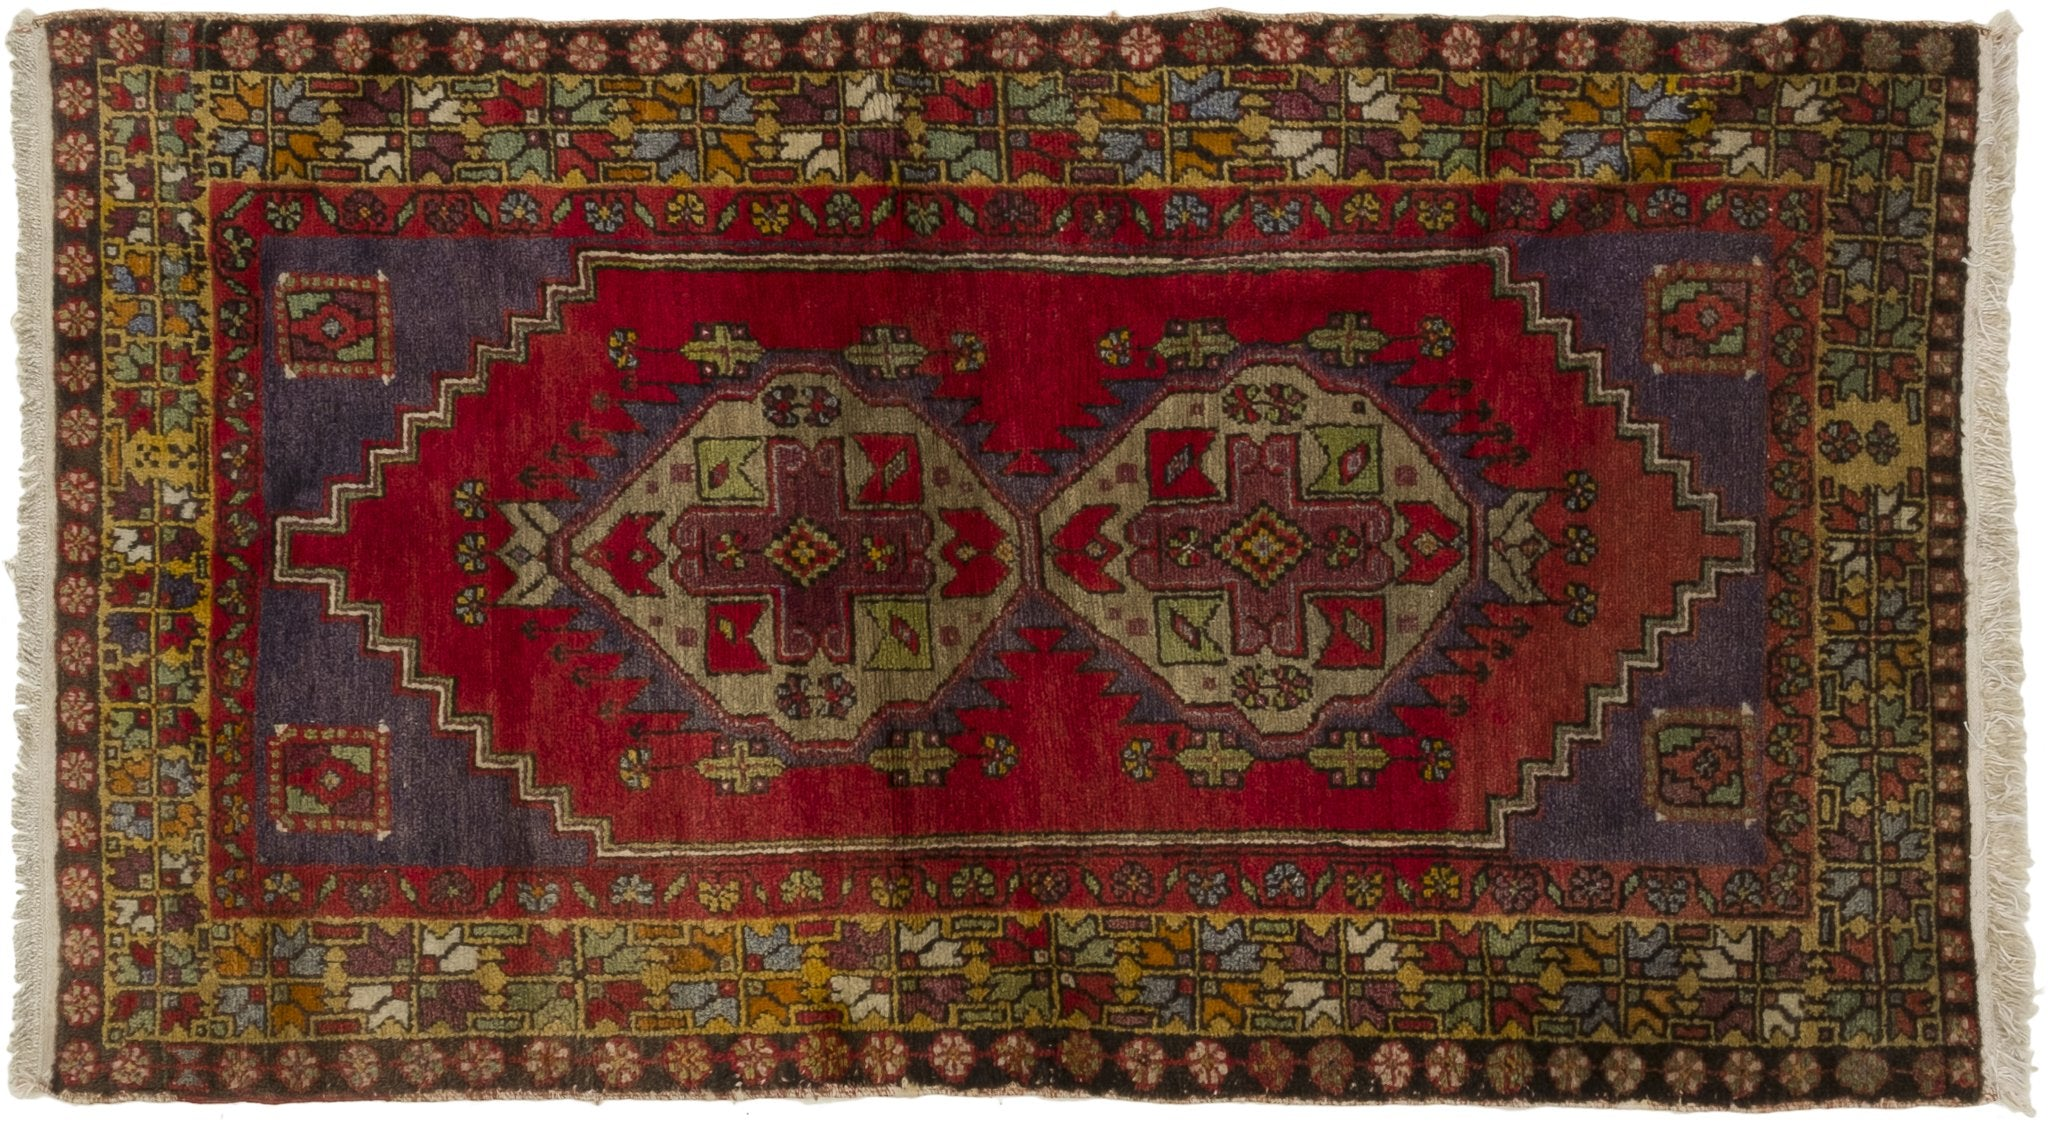 Vintage Turkish Rug Hermundur